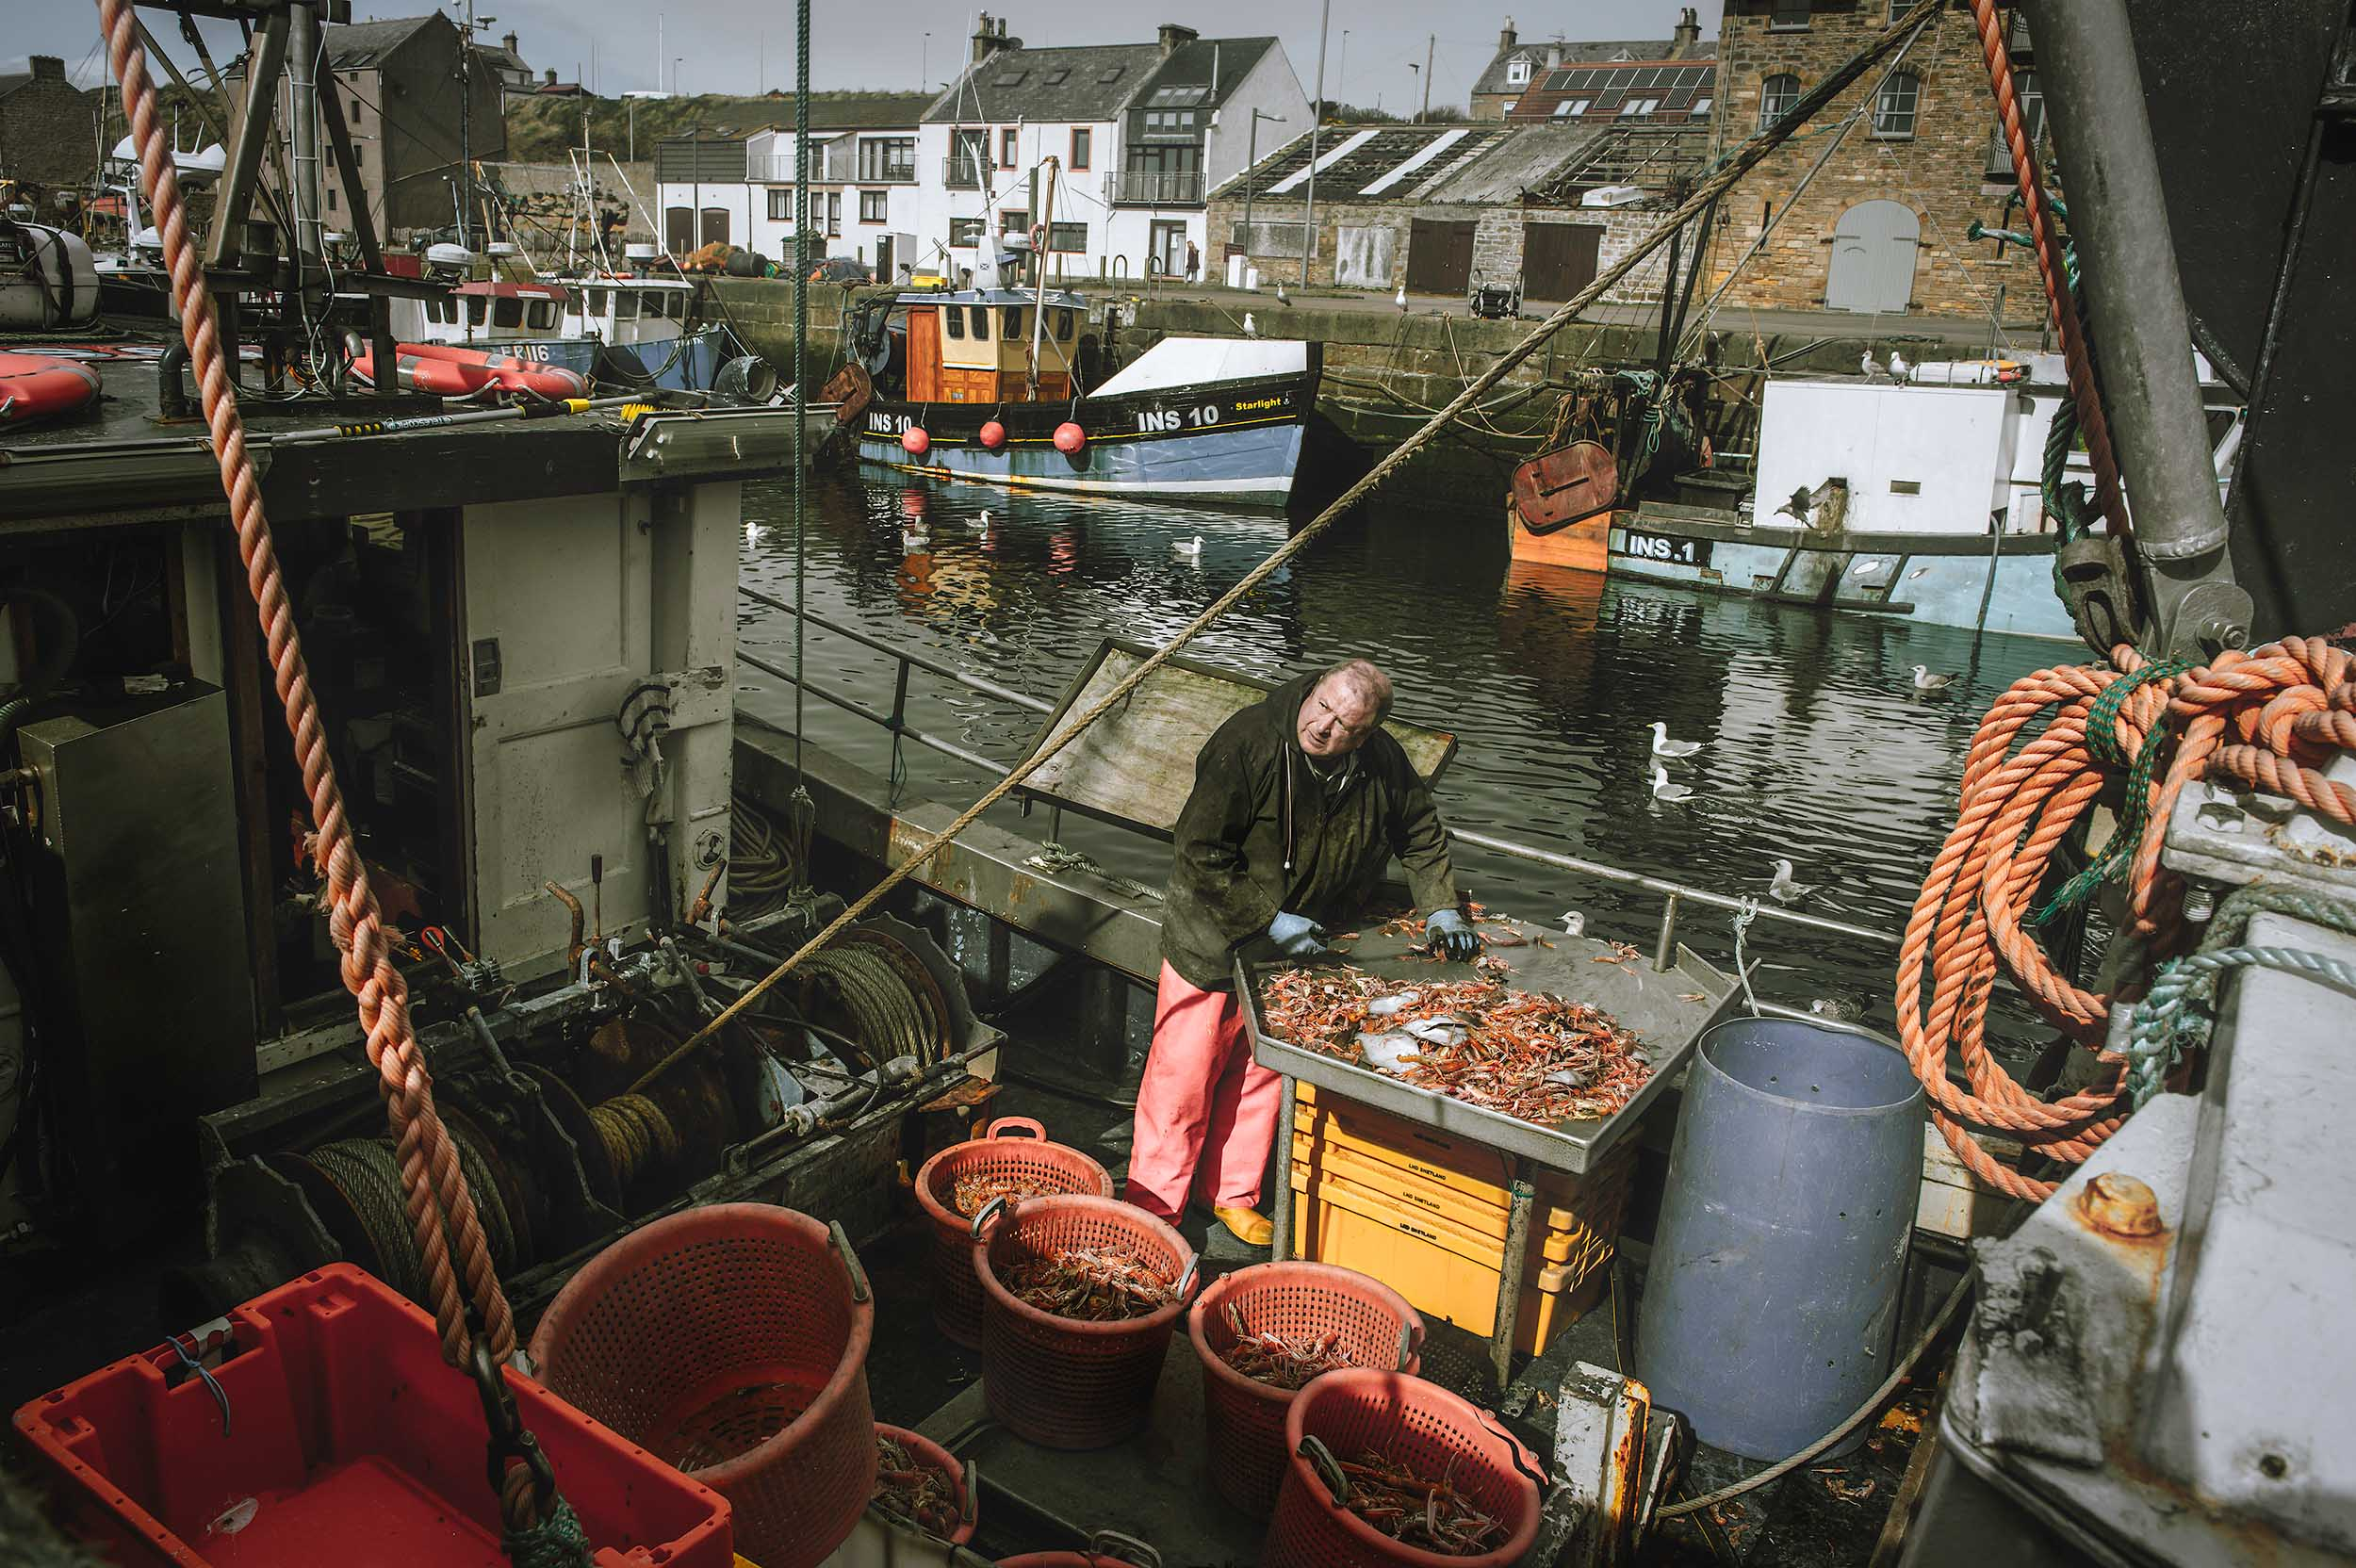 A fisherman arrives back at Burghead Harbour in Moray with a successful haul of Prawns.